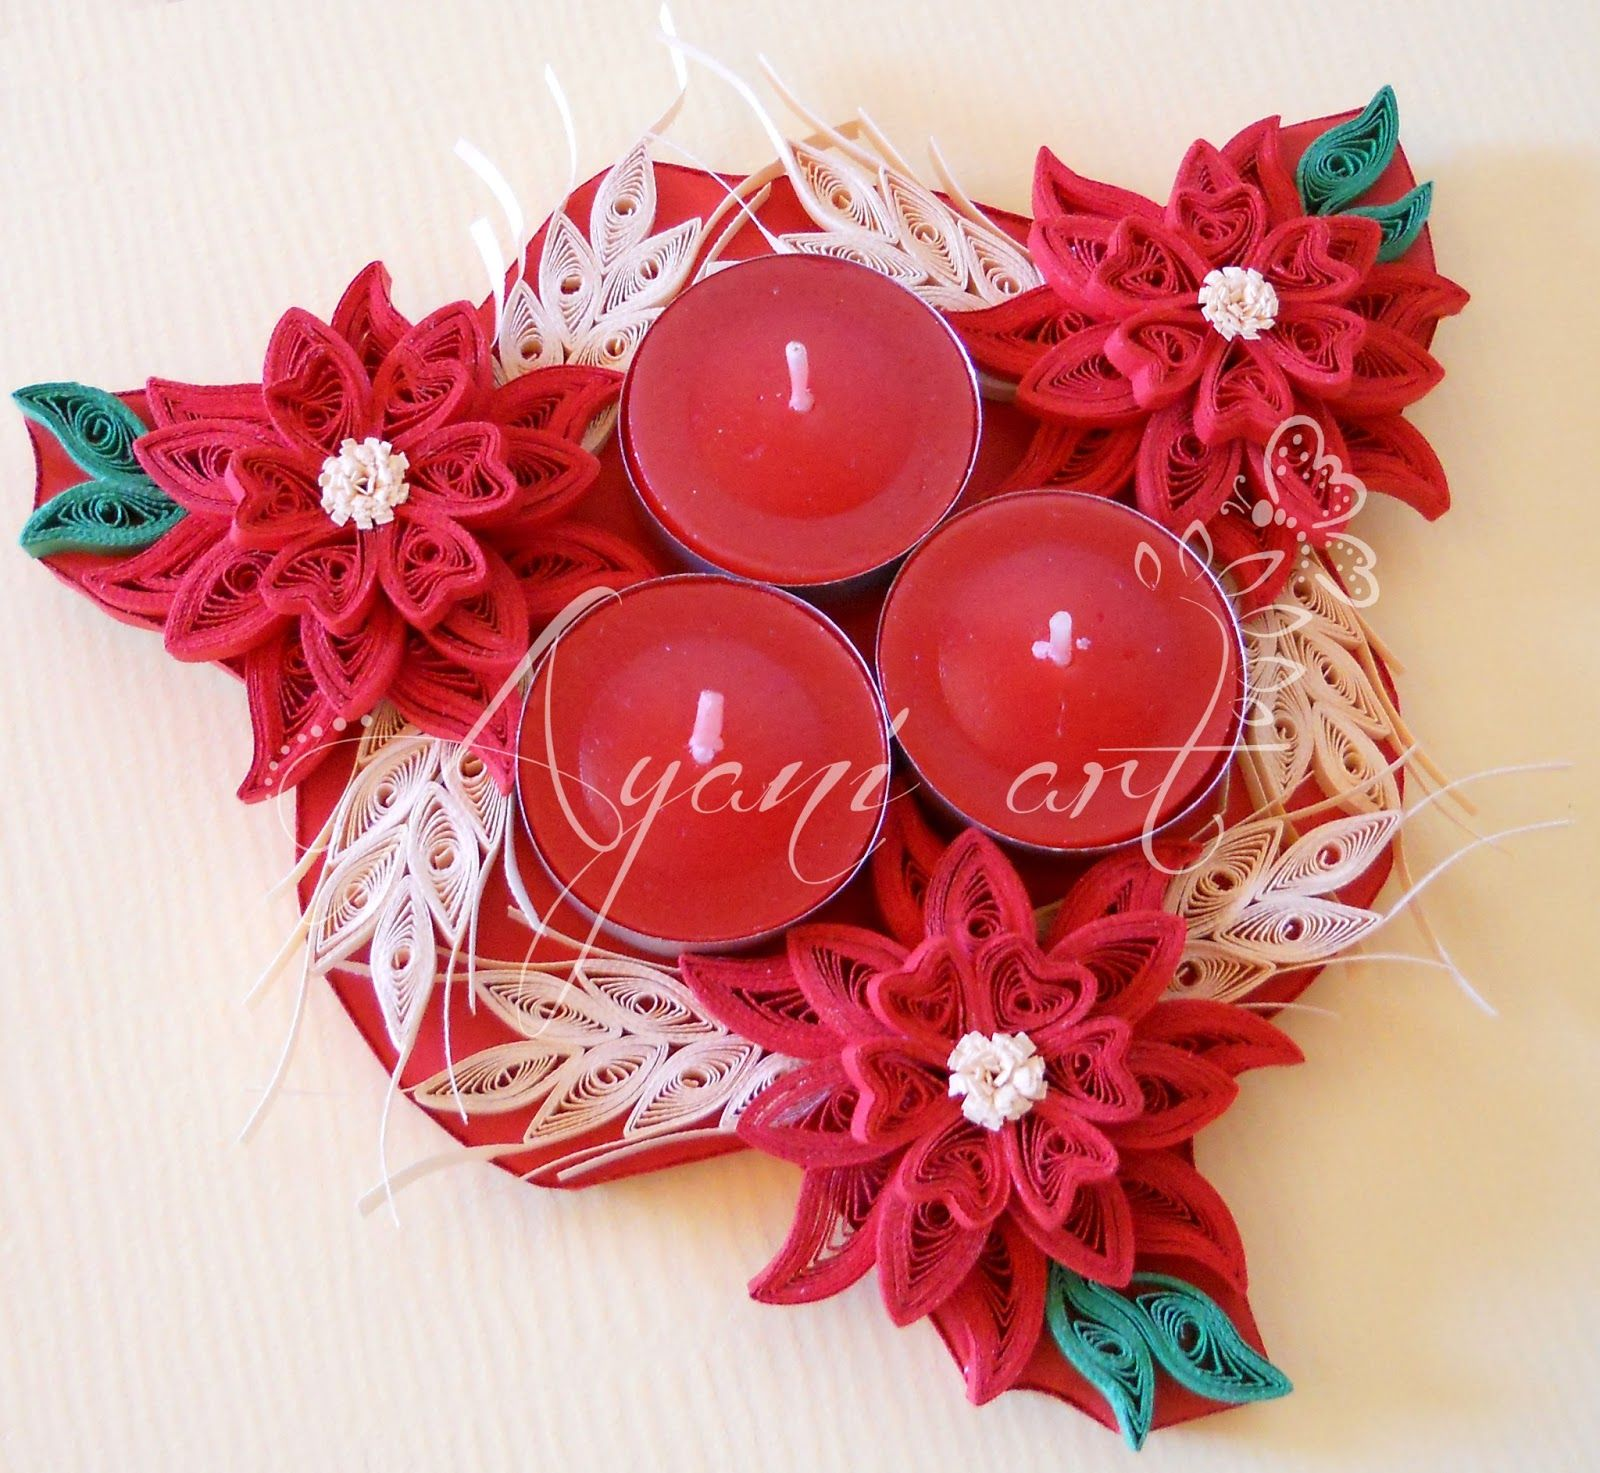 Ayani art | Quilling - Candle Holders | filigrana 3D ... - photo#40